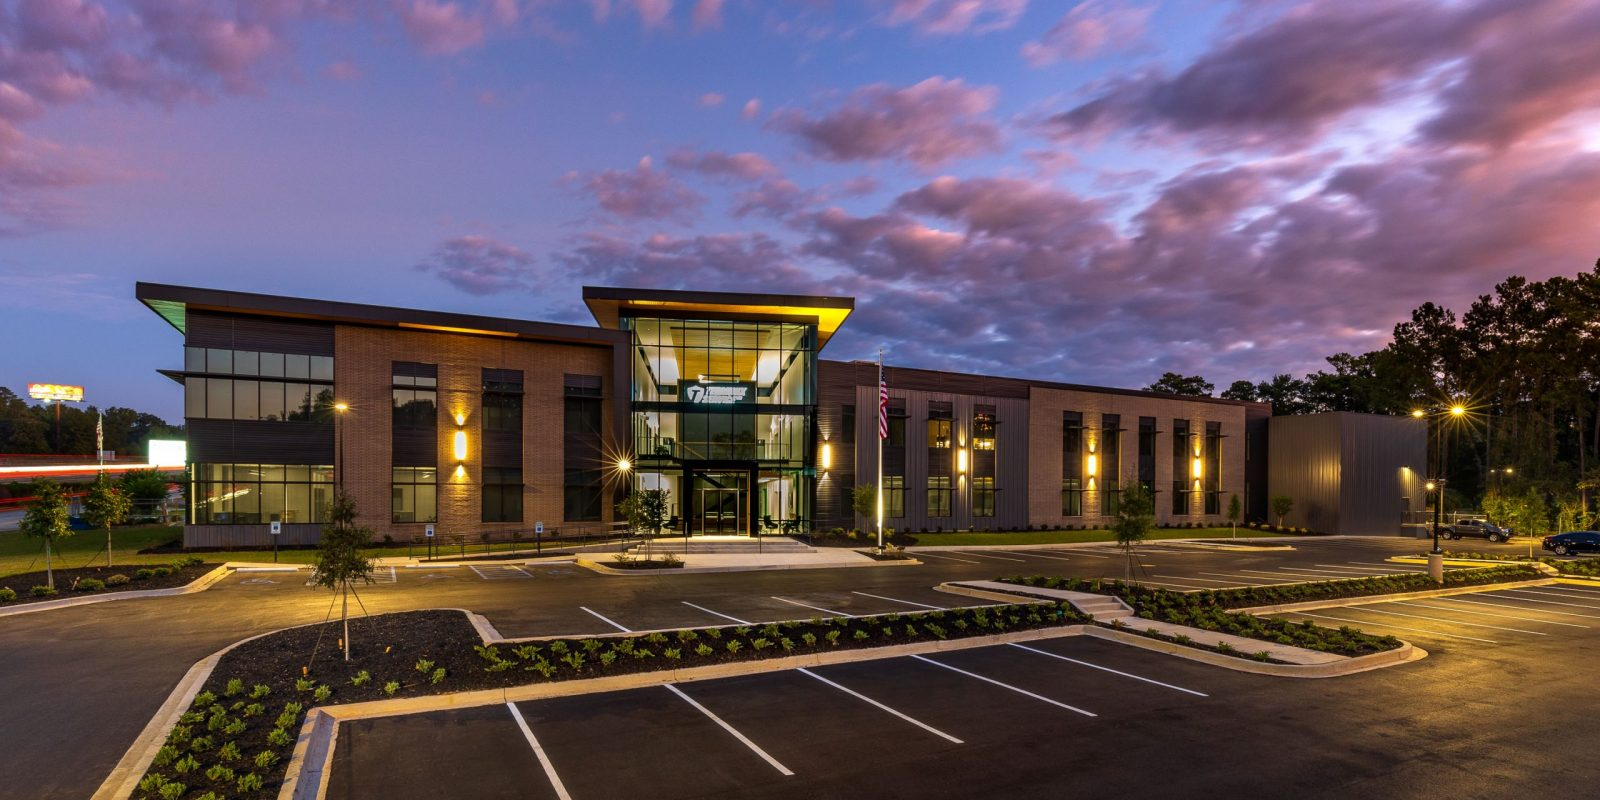 Terminix Corporate Office Headquarters - Exterior